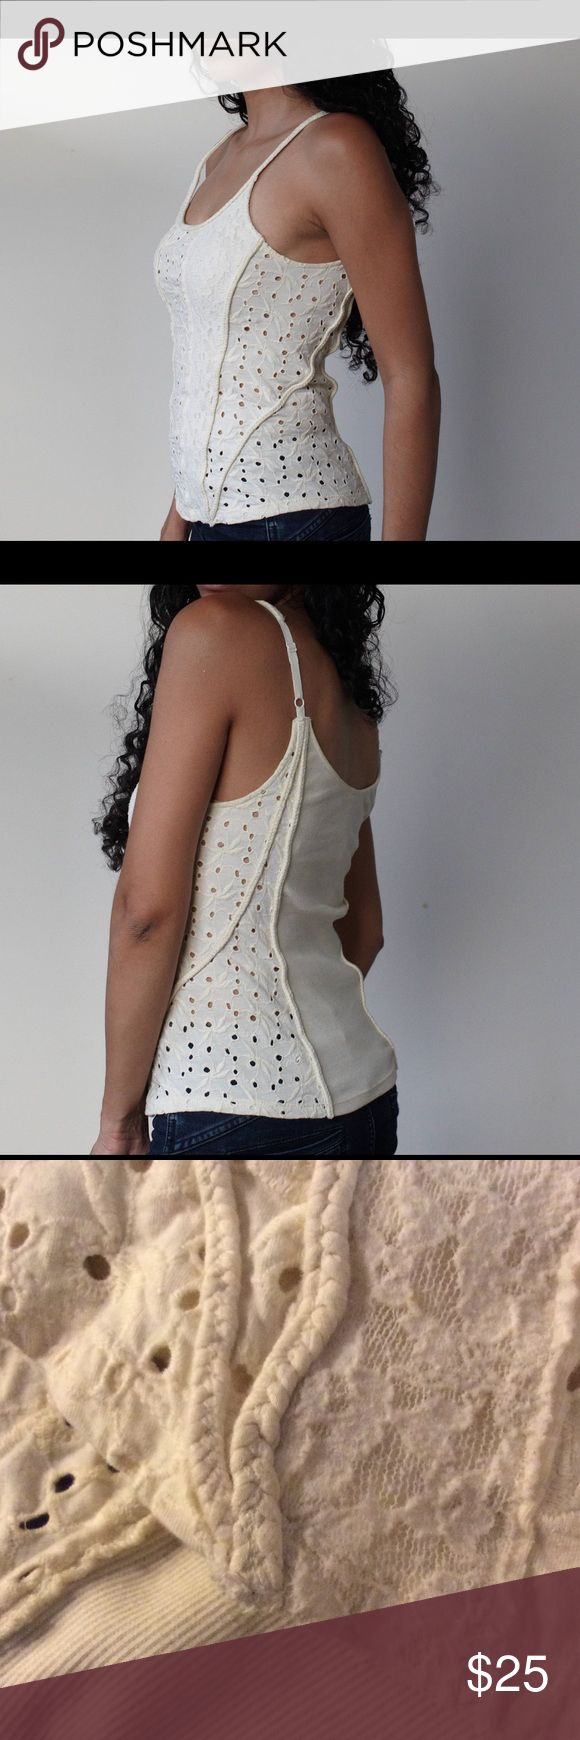 Free People Cream Spaghetti Top w/Lace & Braiding Free People Cream Spaghetti Top w/Lace & Braiding. Top is darker and more cream colored than photos. Gently used. Free People Tops Tank Tops